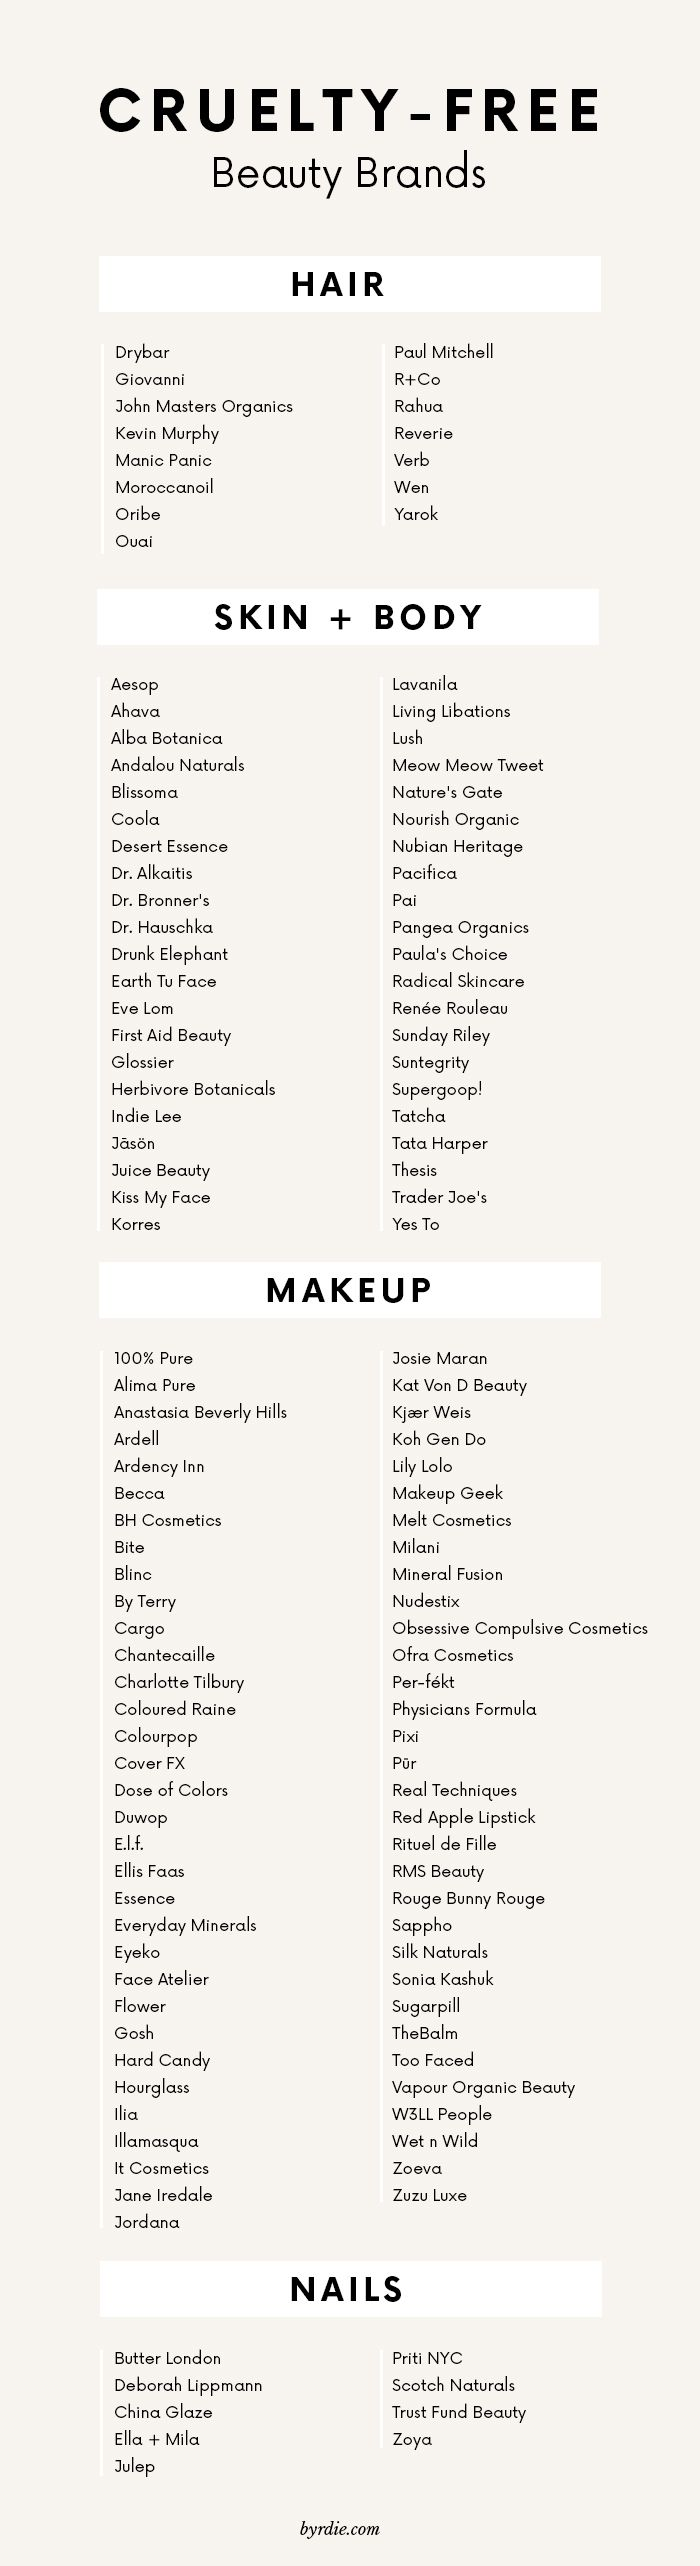 //The best cruelty-free beauty brands for hair, skin, makeup and nails.